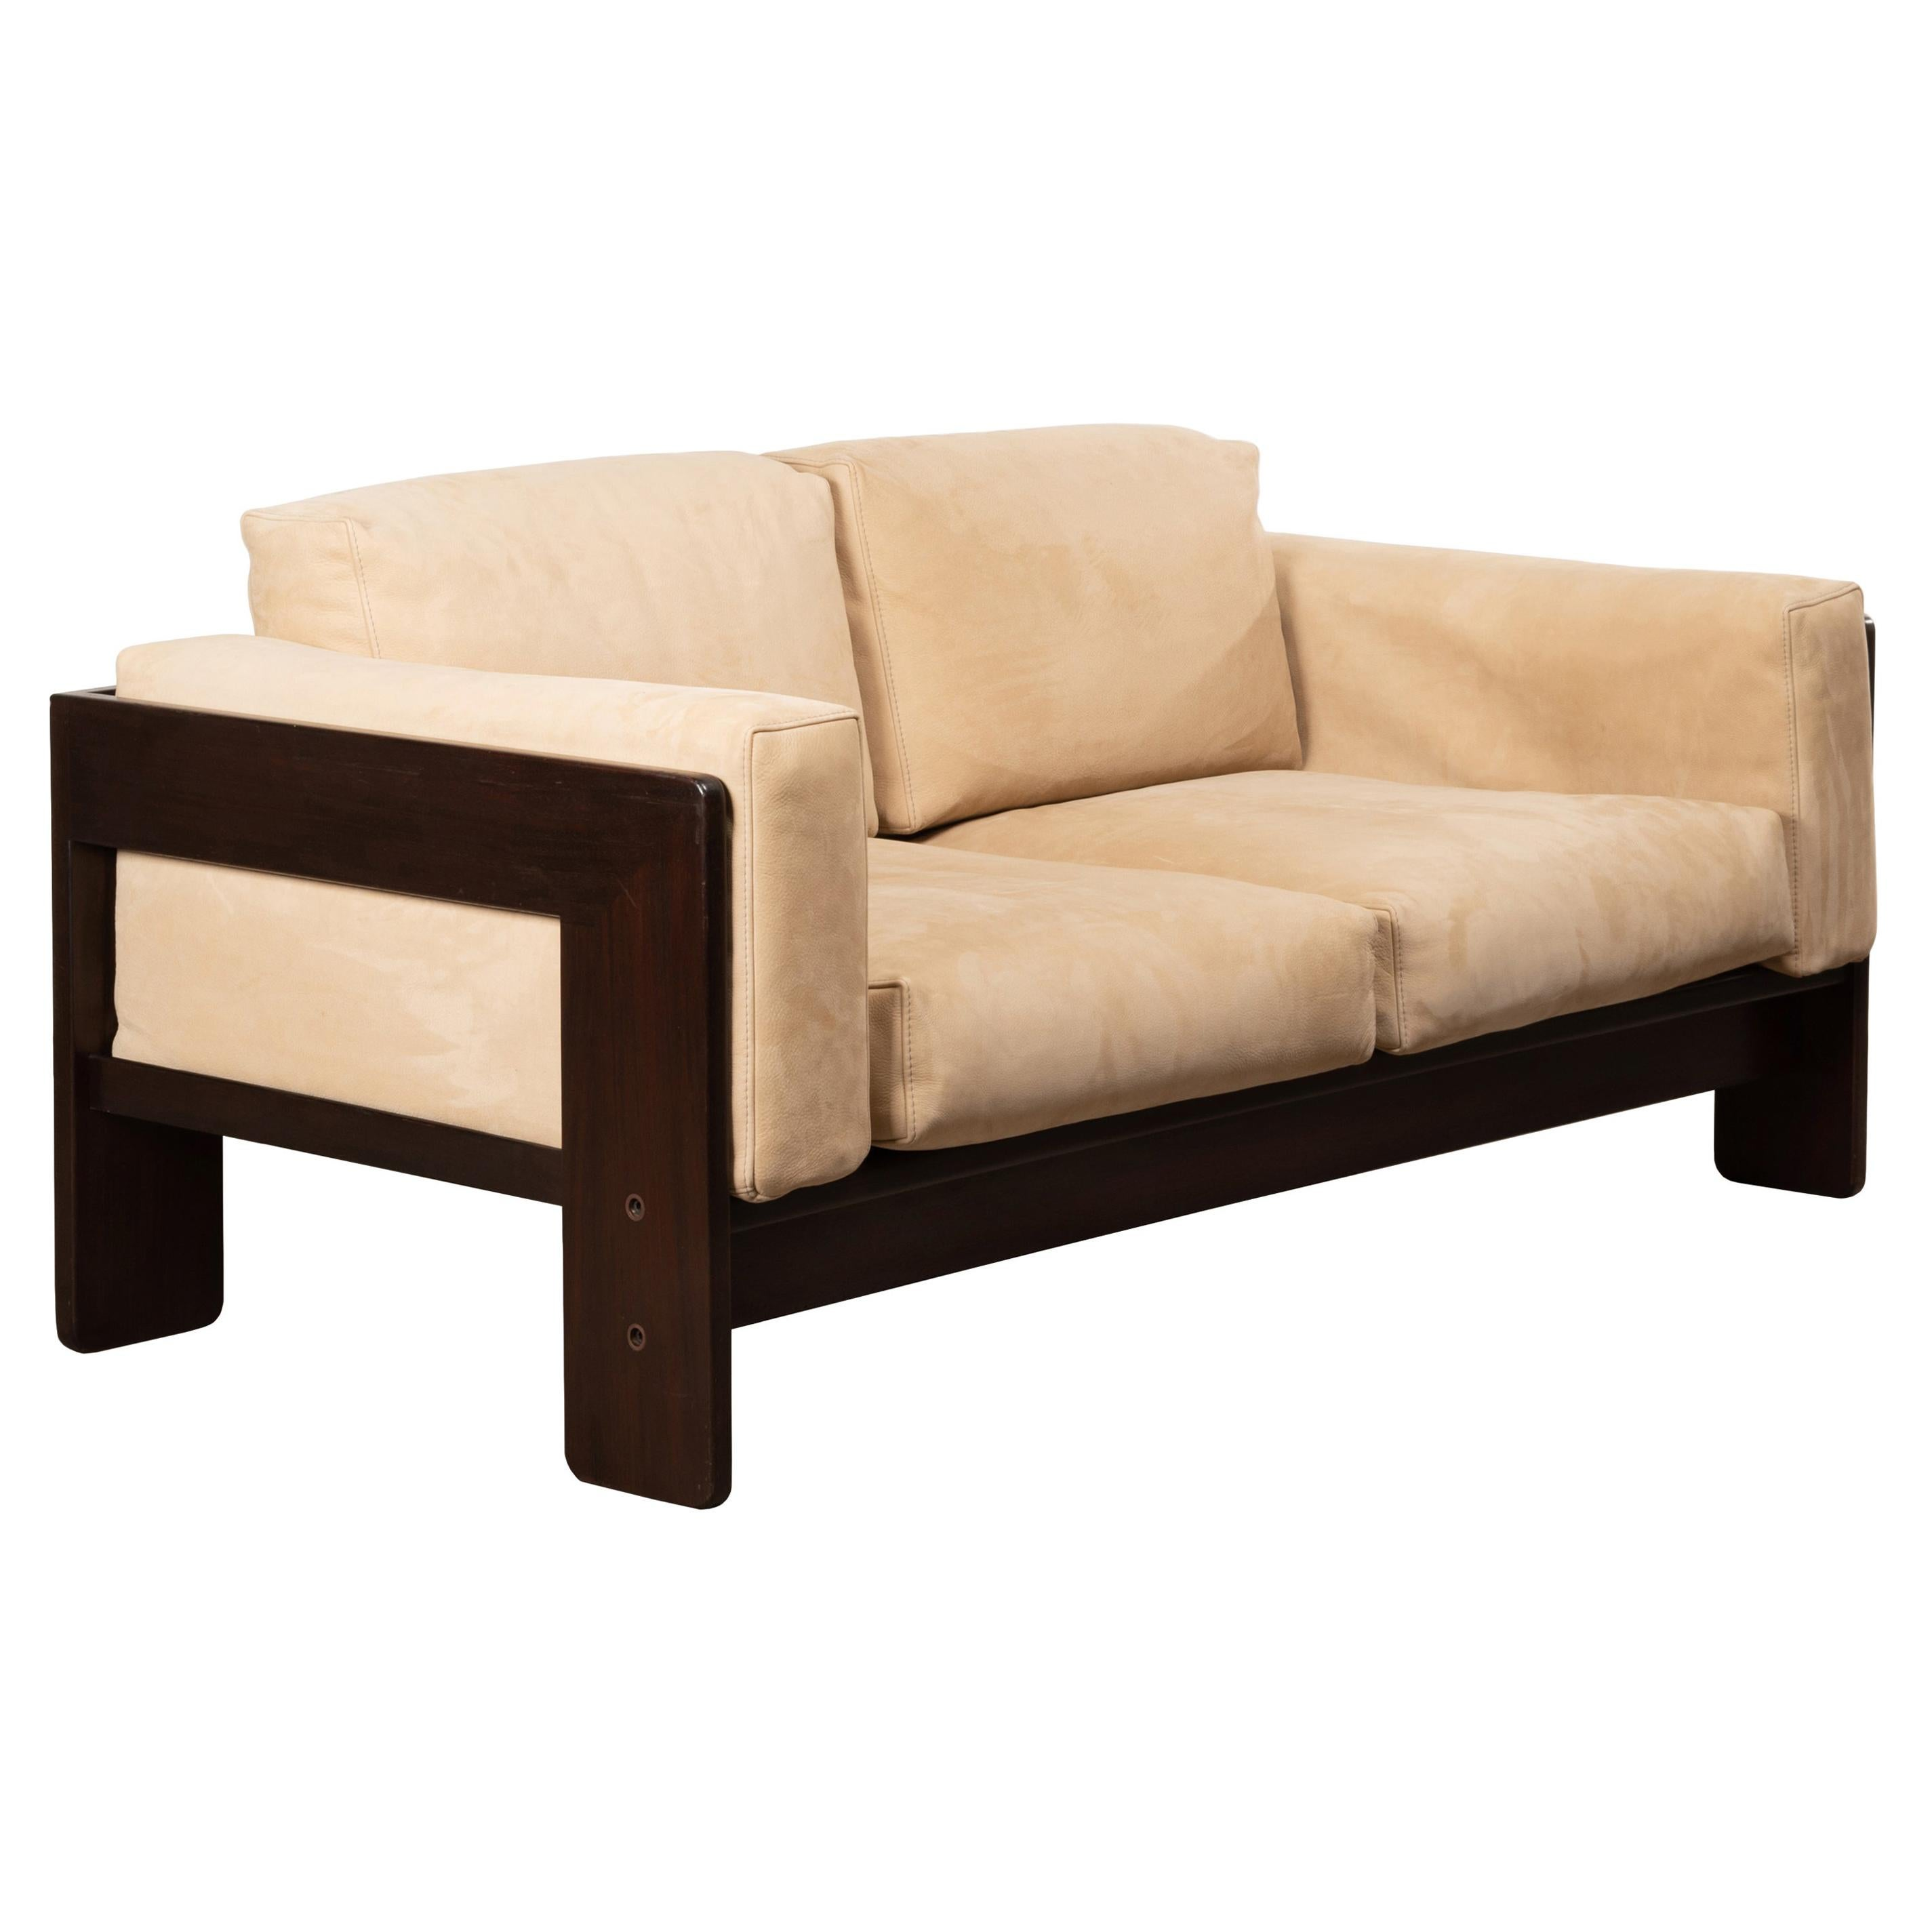 Tobia Scarpa Bastiano 2-Seater Sofa in Walnut and Beige Suede Leather for Knoll